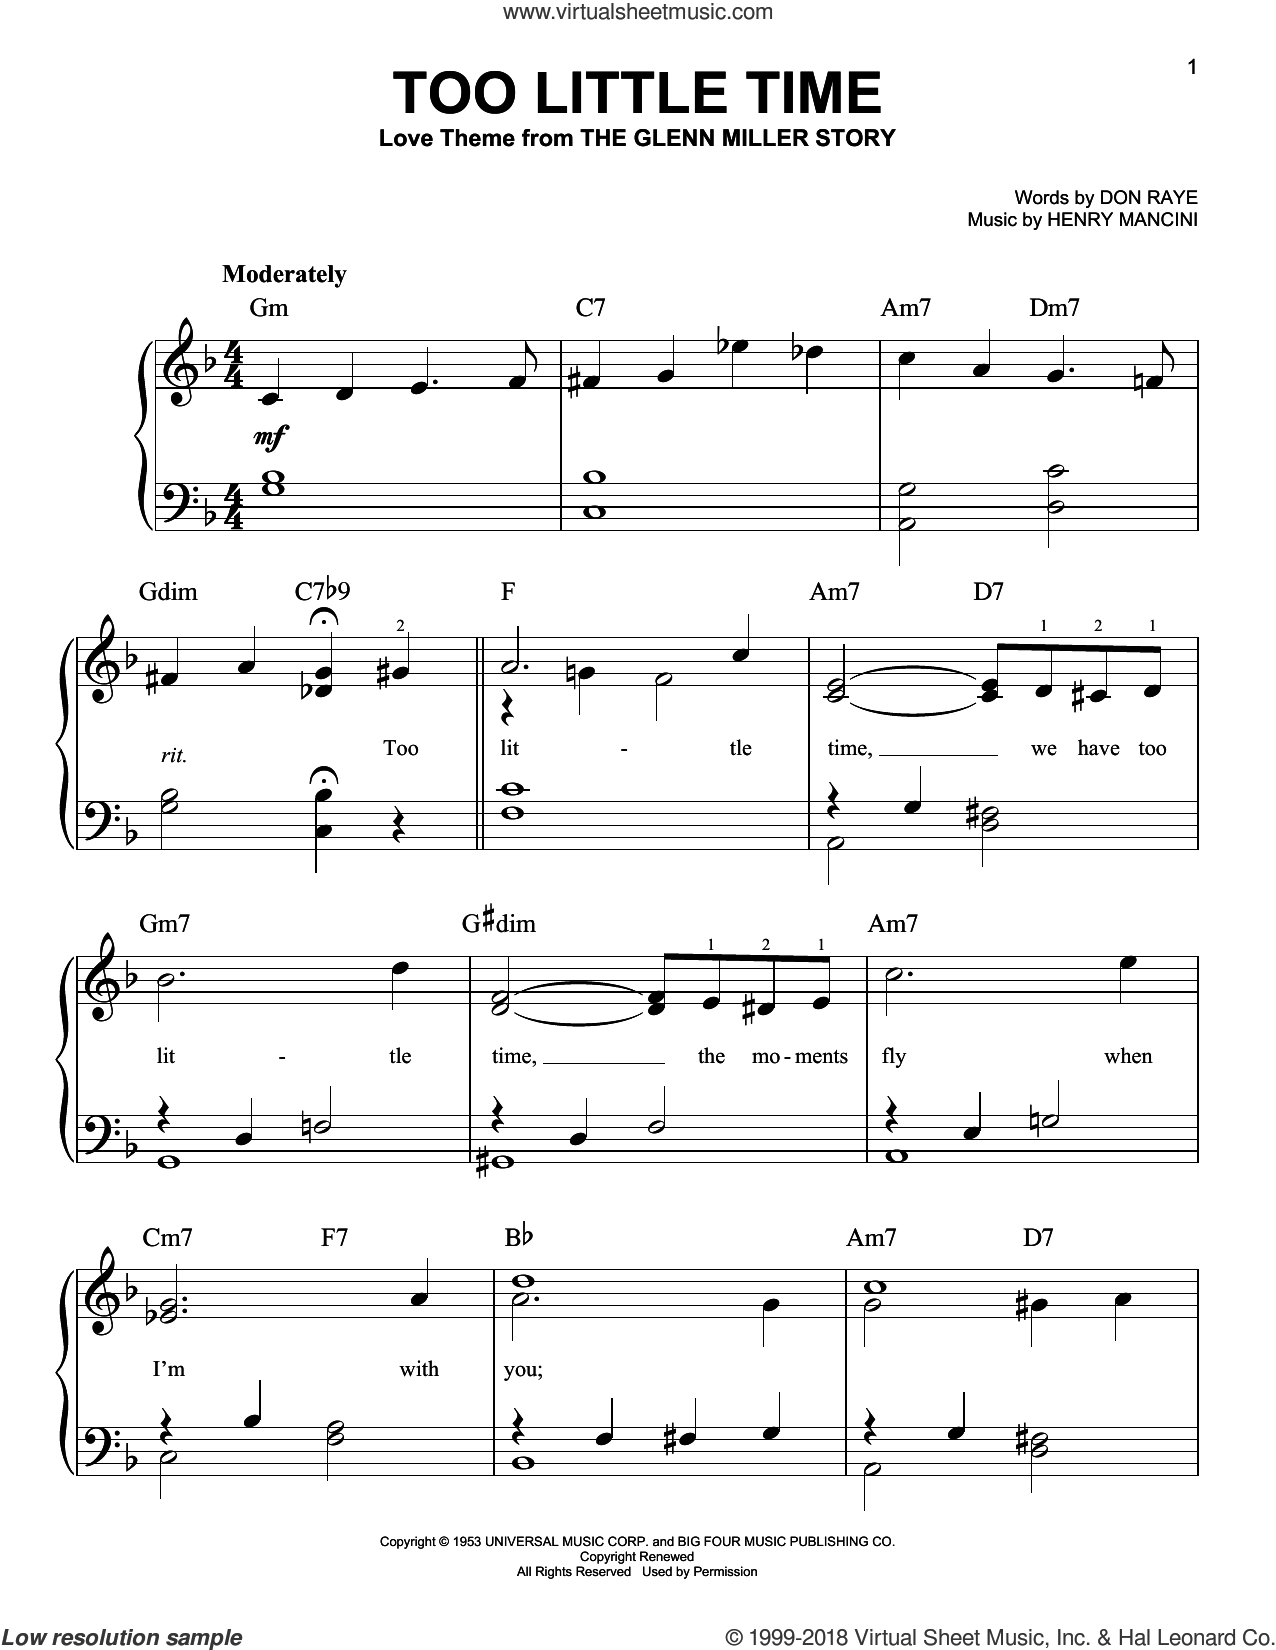 Too Little Time sheet music for piano solo by Henry Mancini and Don Raye, easy piano. Score Image Preview.